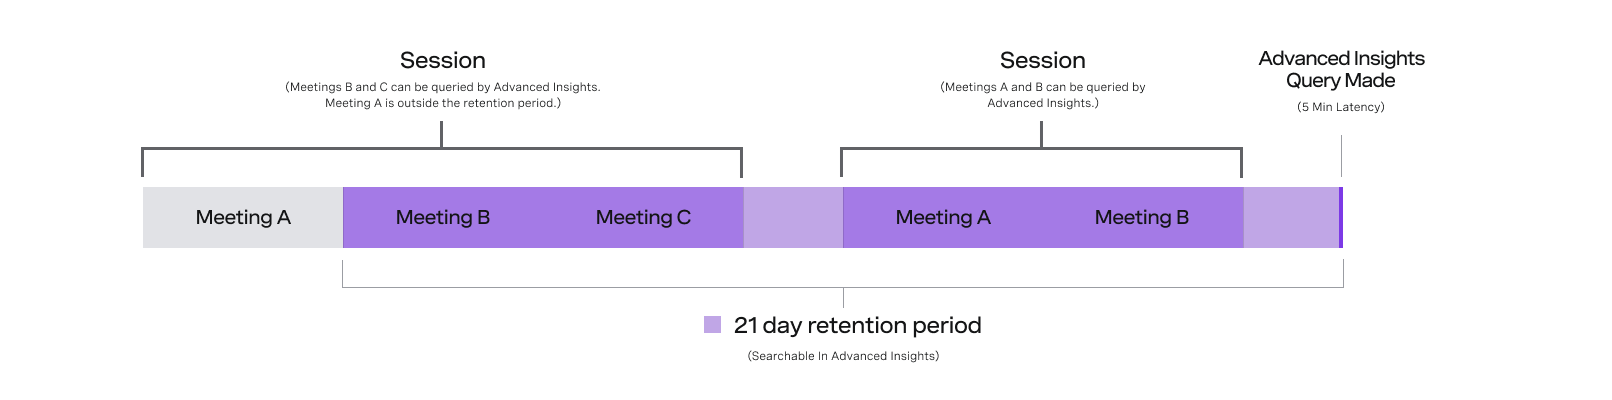 Timeline displaying retention spans of the Advanced Insights API